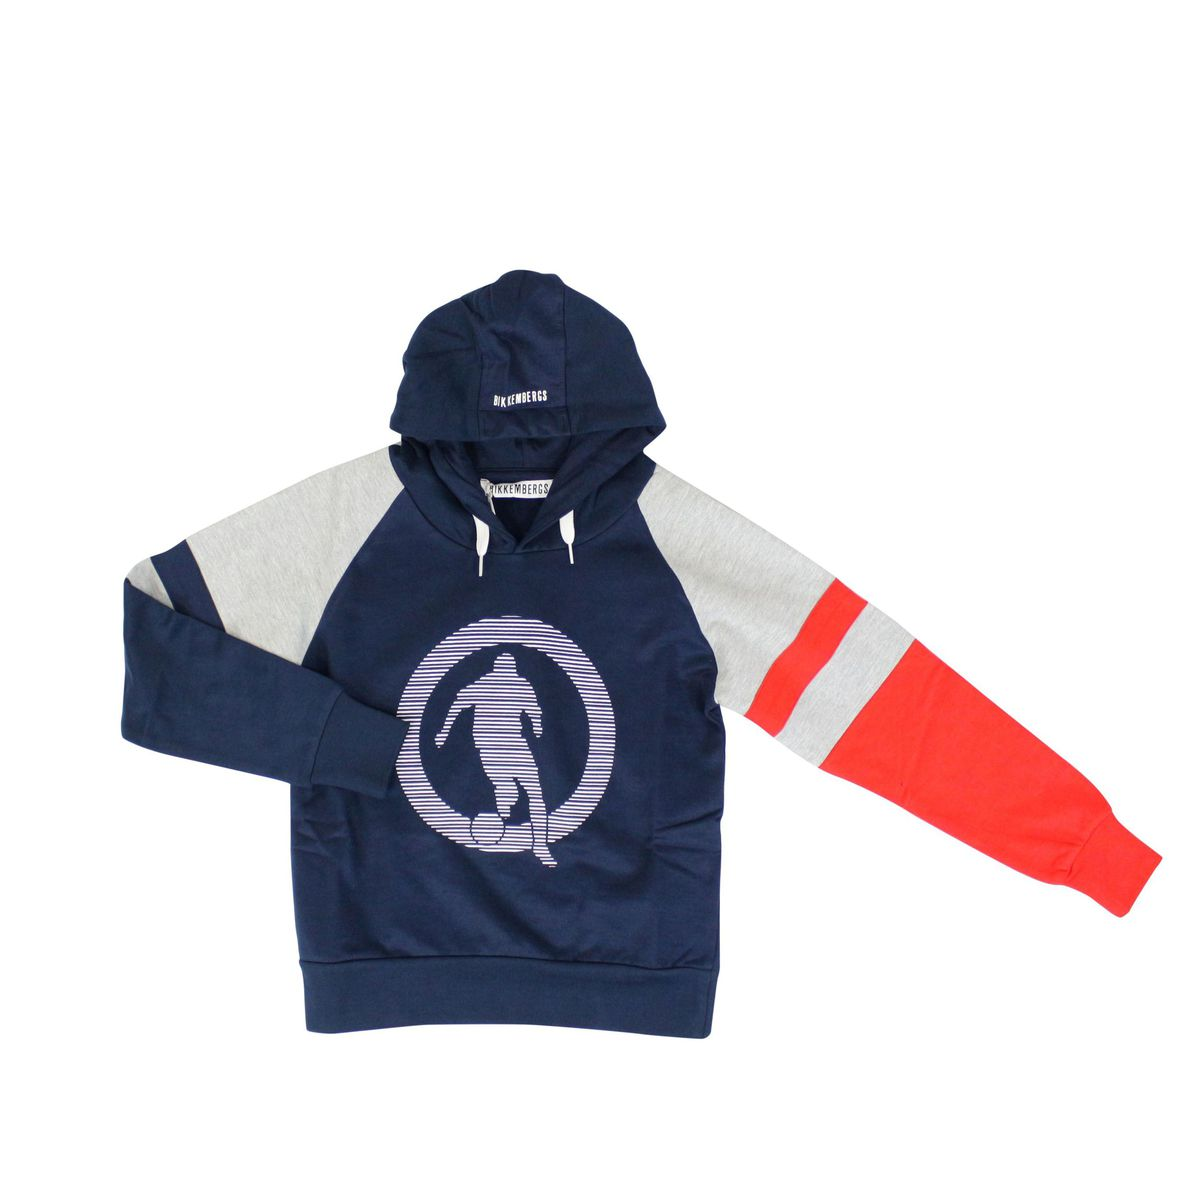 Cotton sweatshirt with hood and logo Blue Bikkembergs